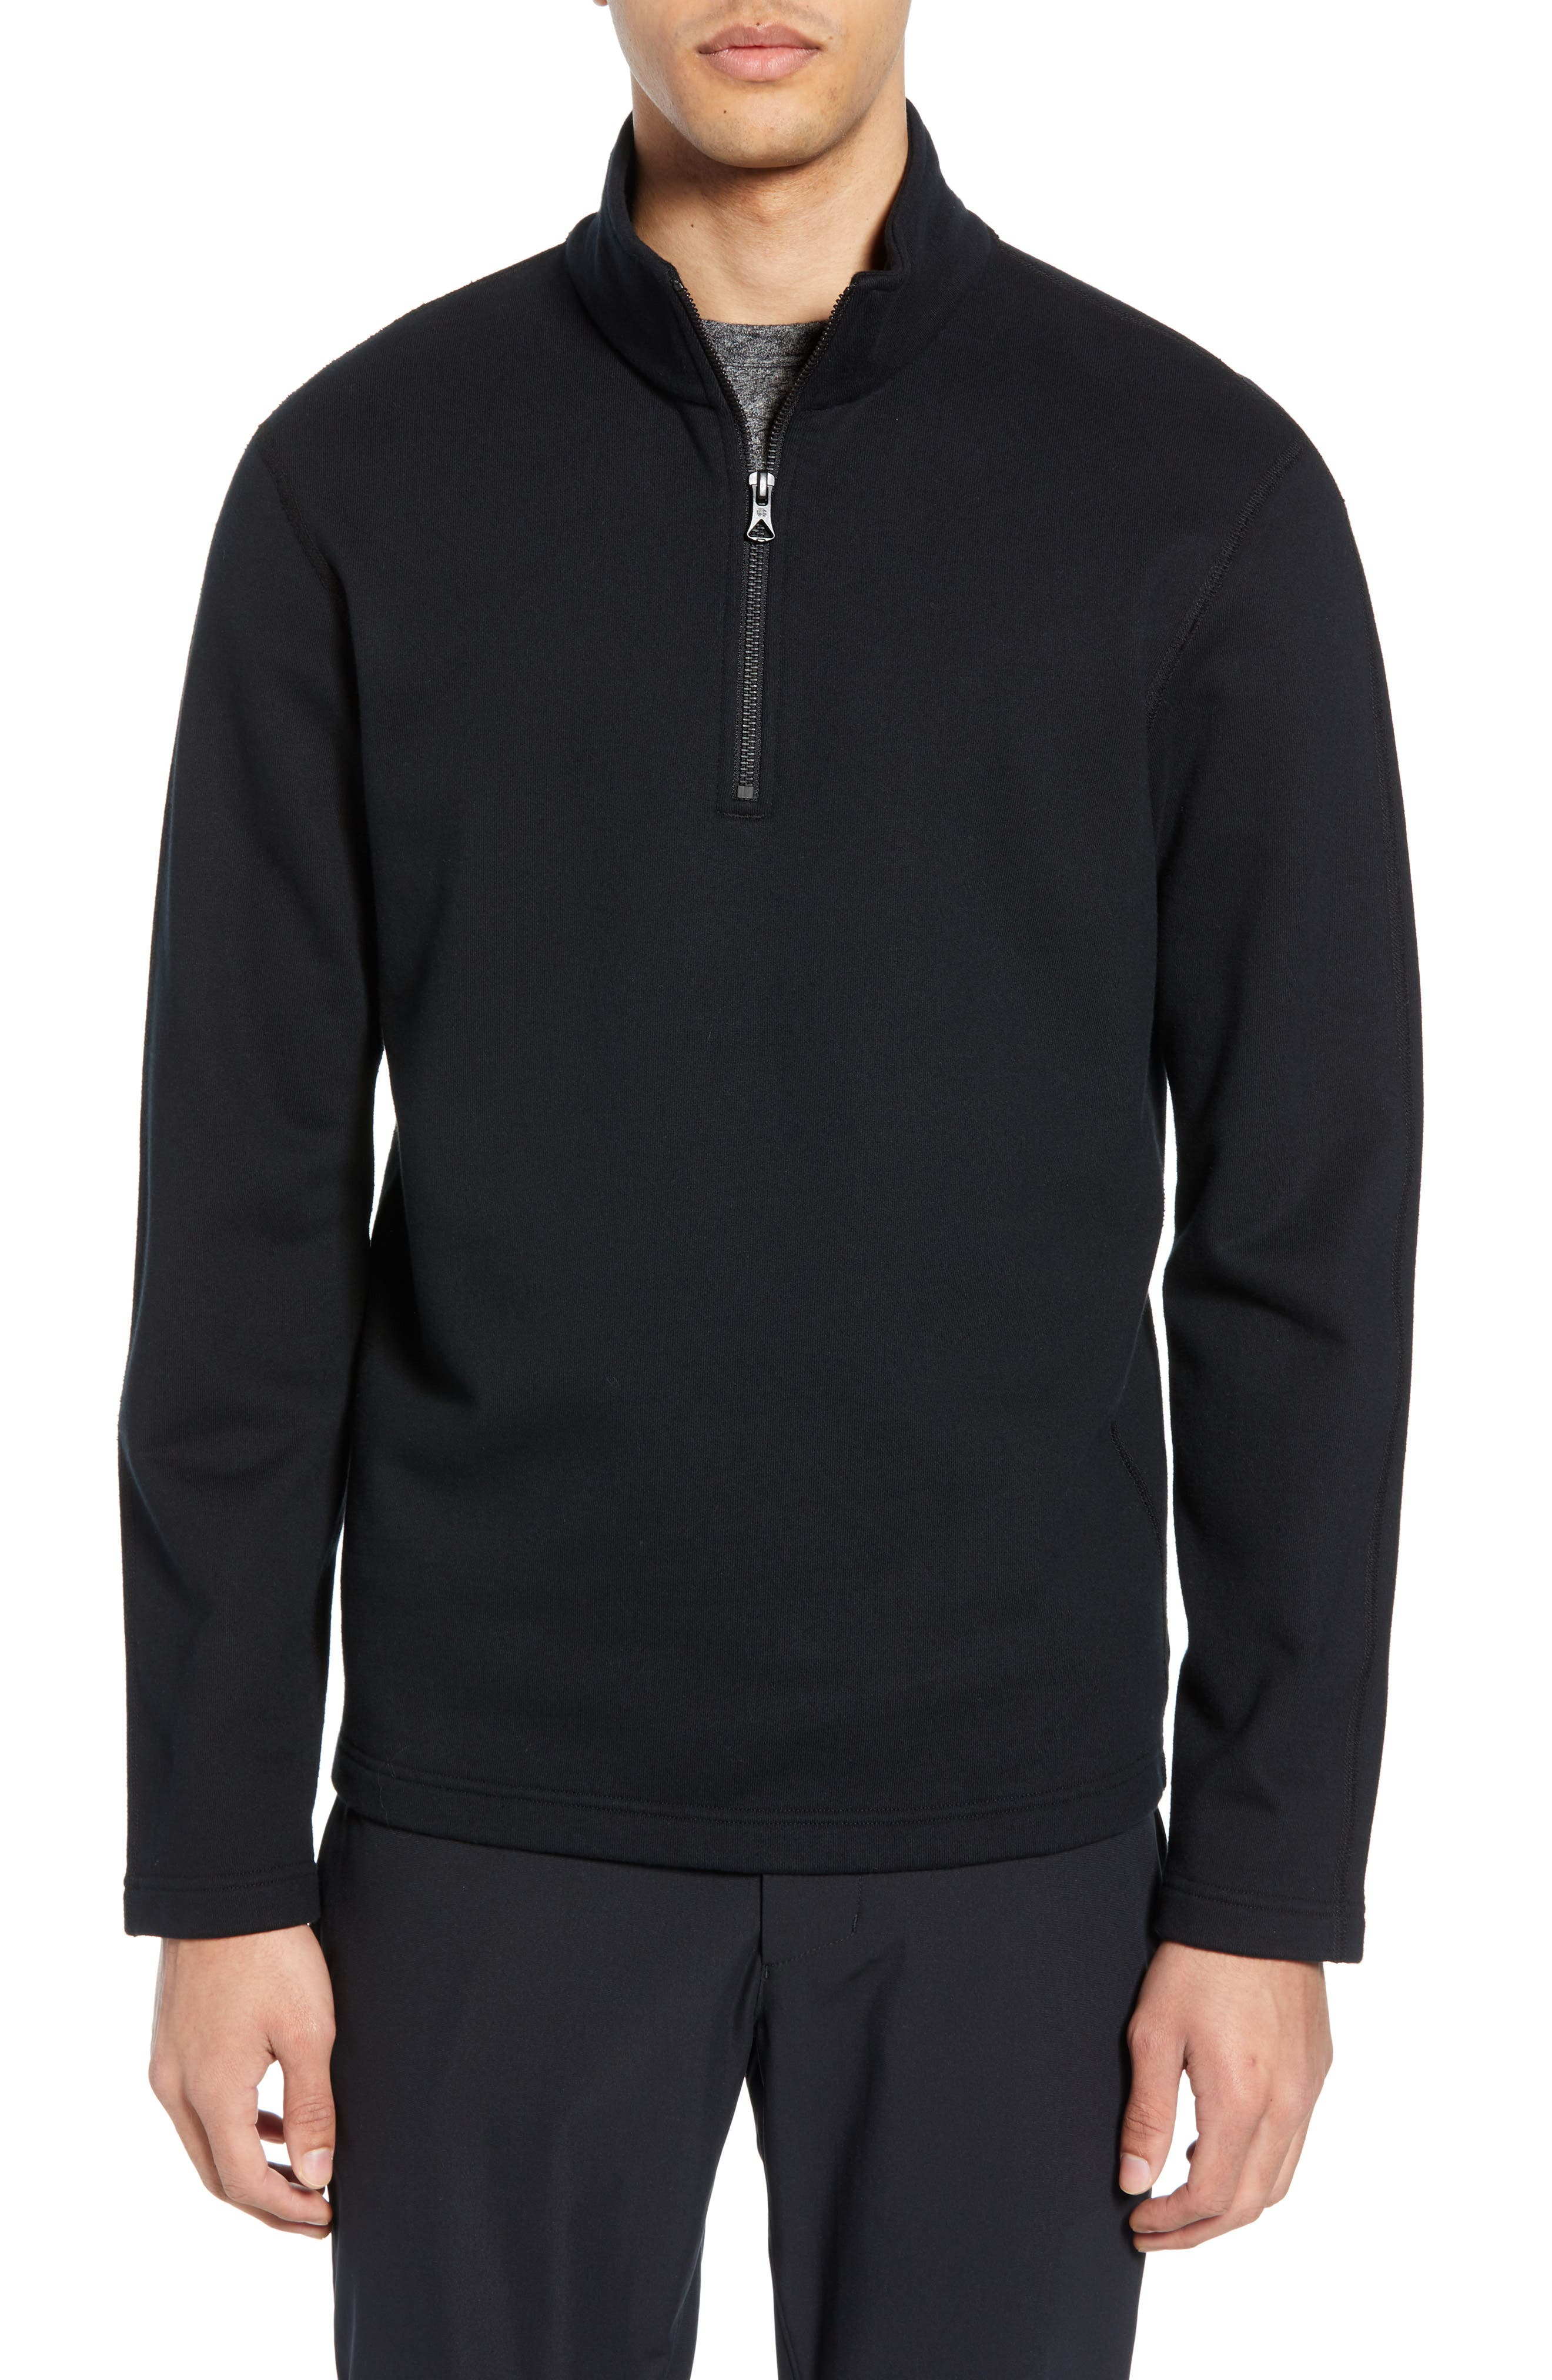 REIGNING CHAMP Half Zip Pullover, Main, color, 001